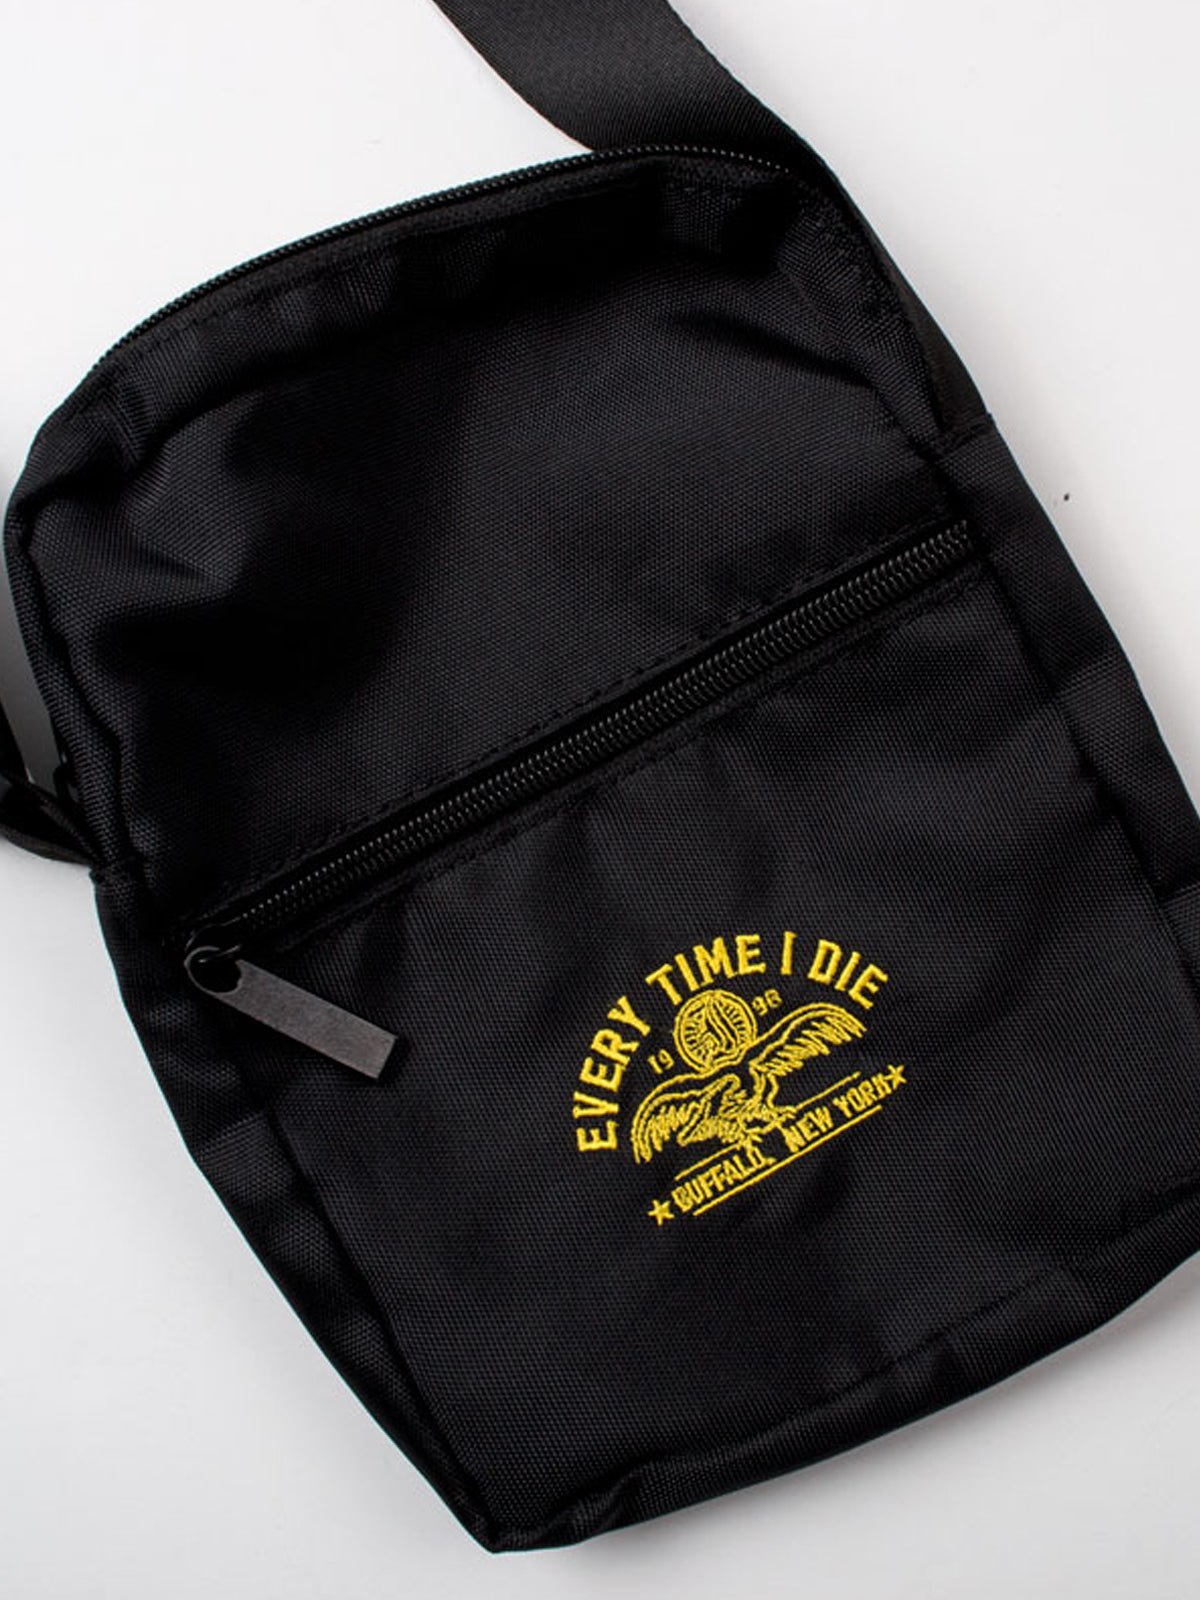 Every Time I Die - Mini Messenger Bag - Merch Limited